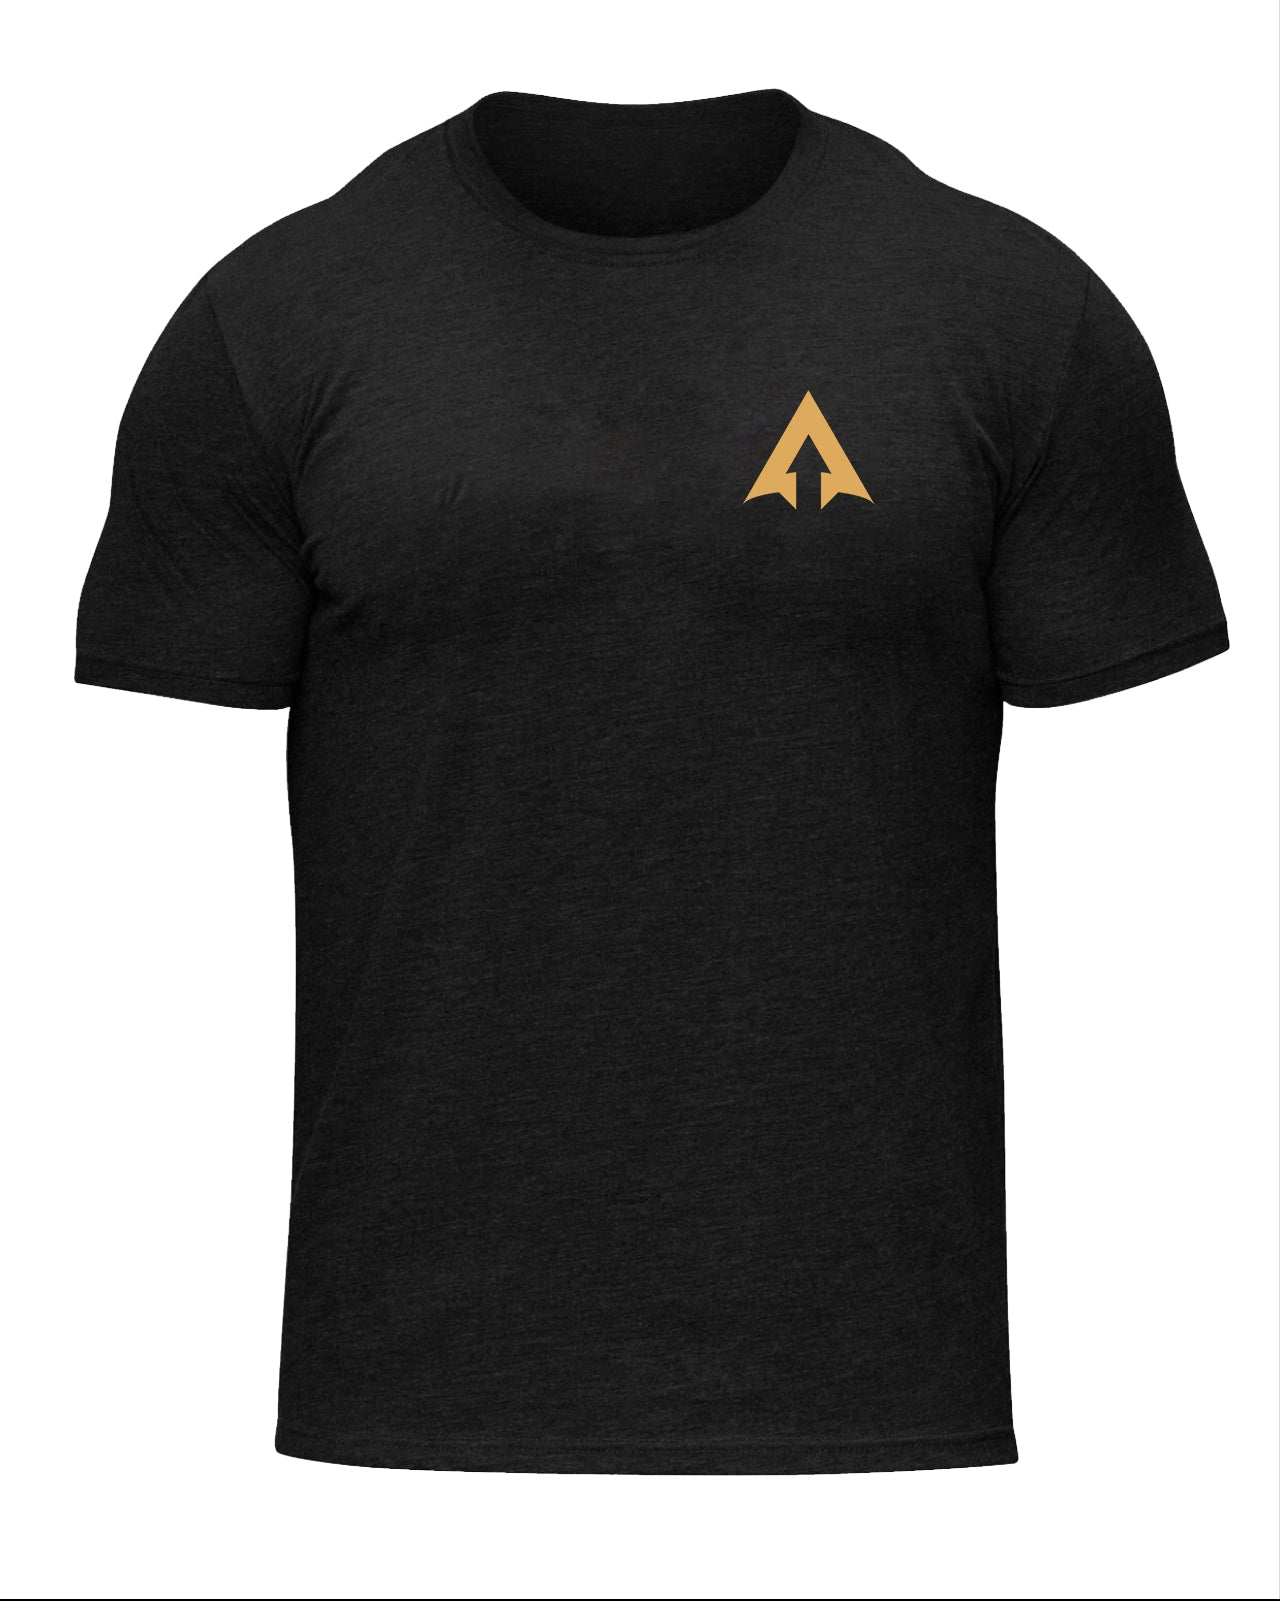 TRADITIONAL TOUGH TEE - Apex Fitness Co.